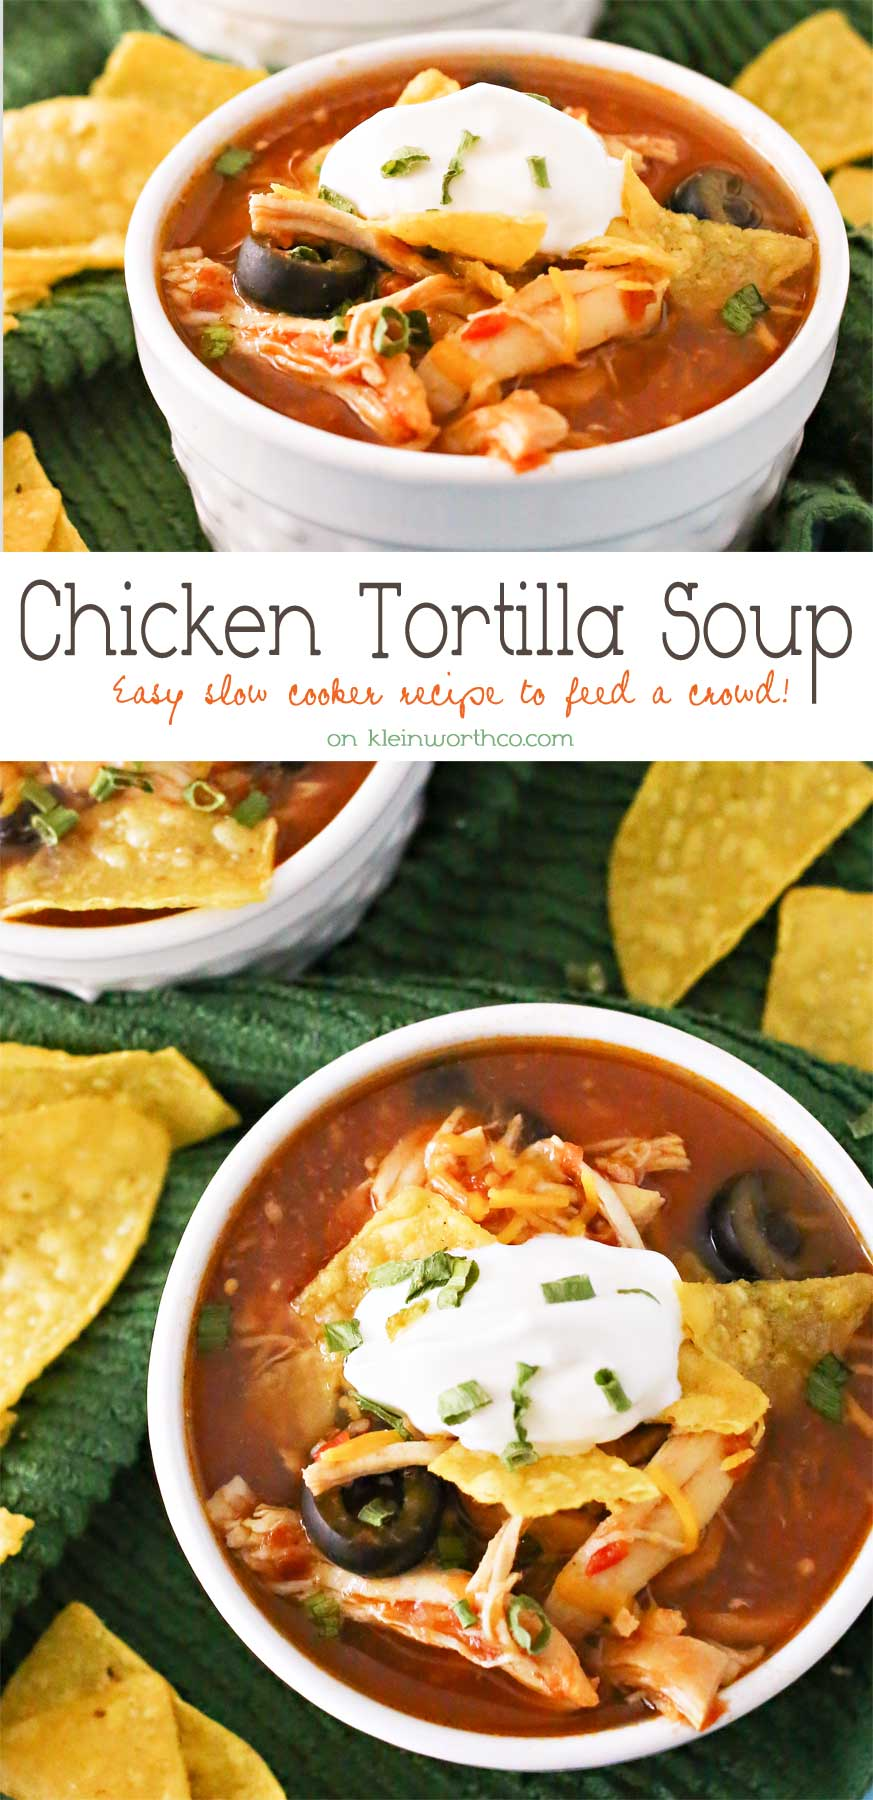 Slow Cooker Chicken Tortilla Soup - Kleinworth & Co - HMLP 74 - Feature